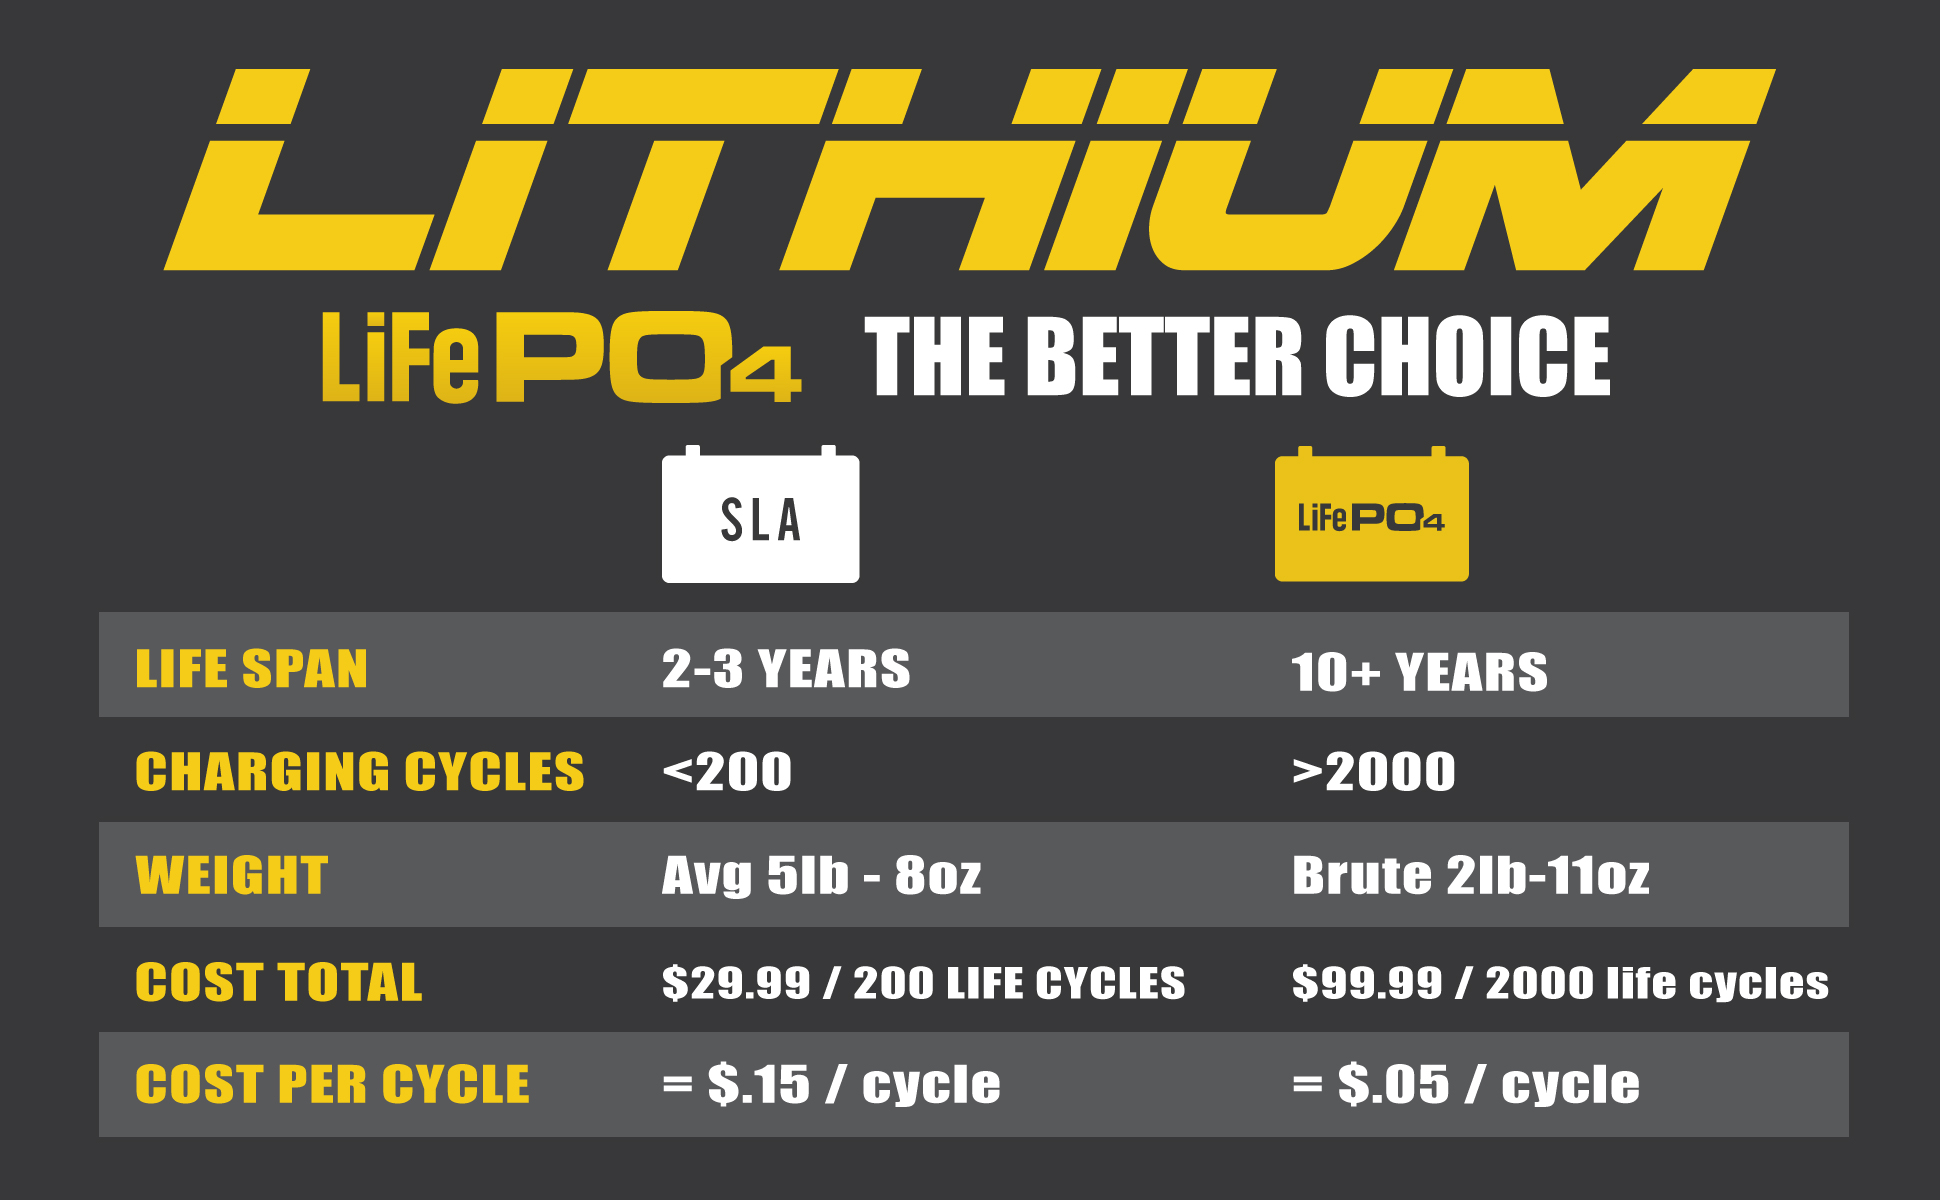 Discover the differences between LiFePO4 and SLA batteries. Life Span, Charging Cycles, Weight, Cost and Cost per charging cycle.